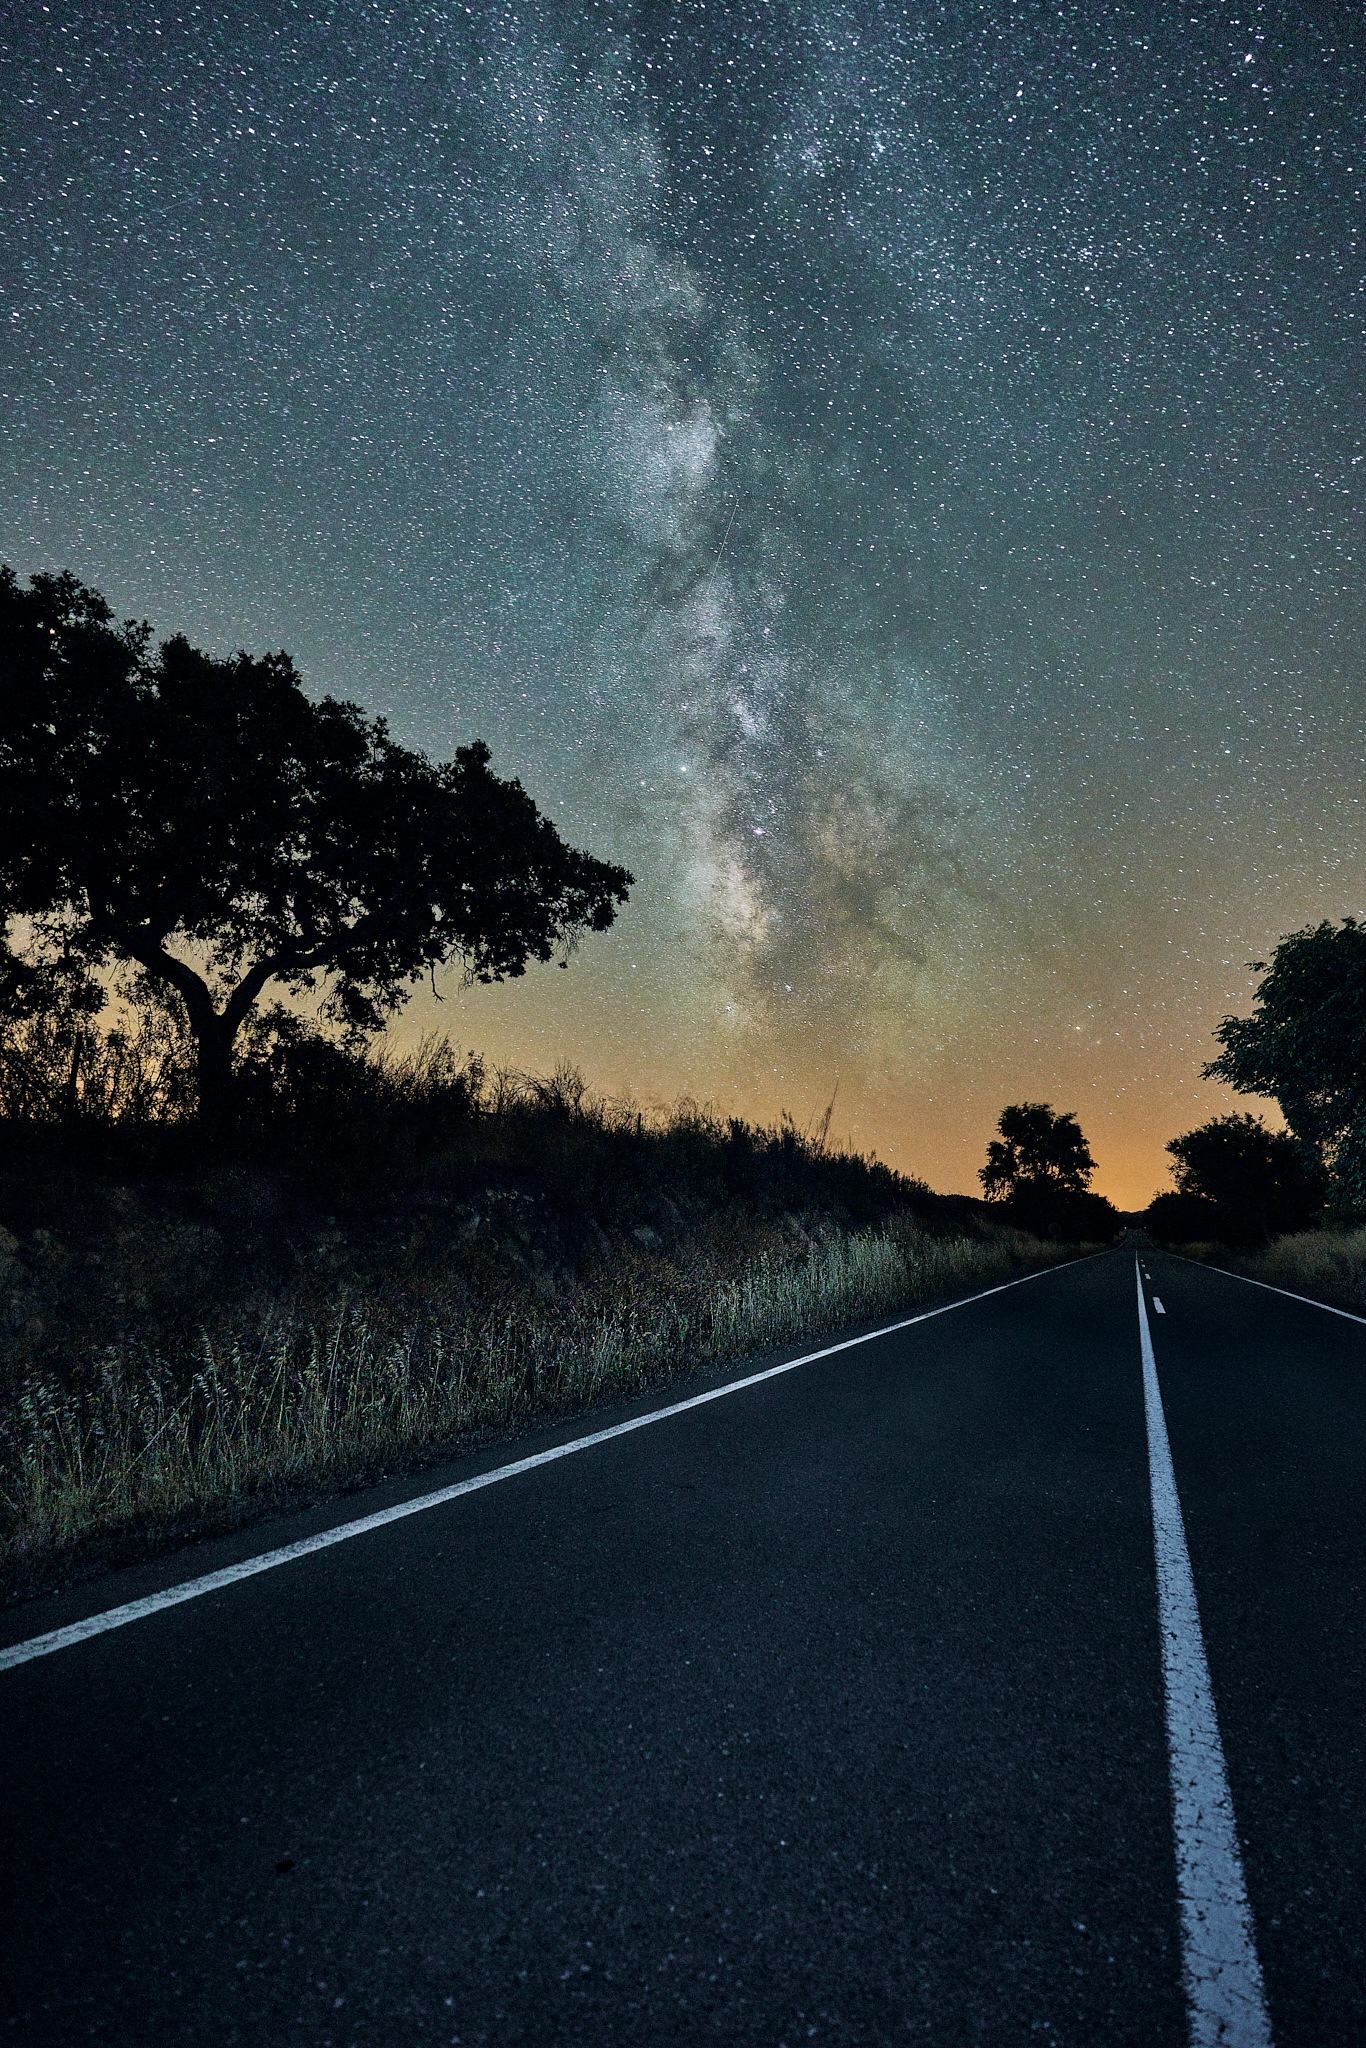 Portugal@Sardanito - The Milky Road by shadexposure